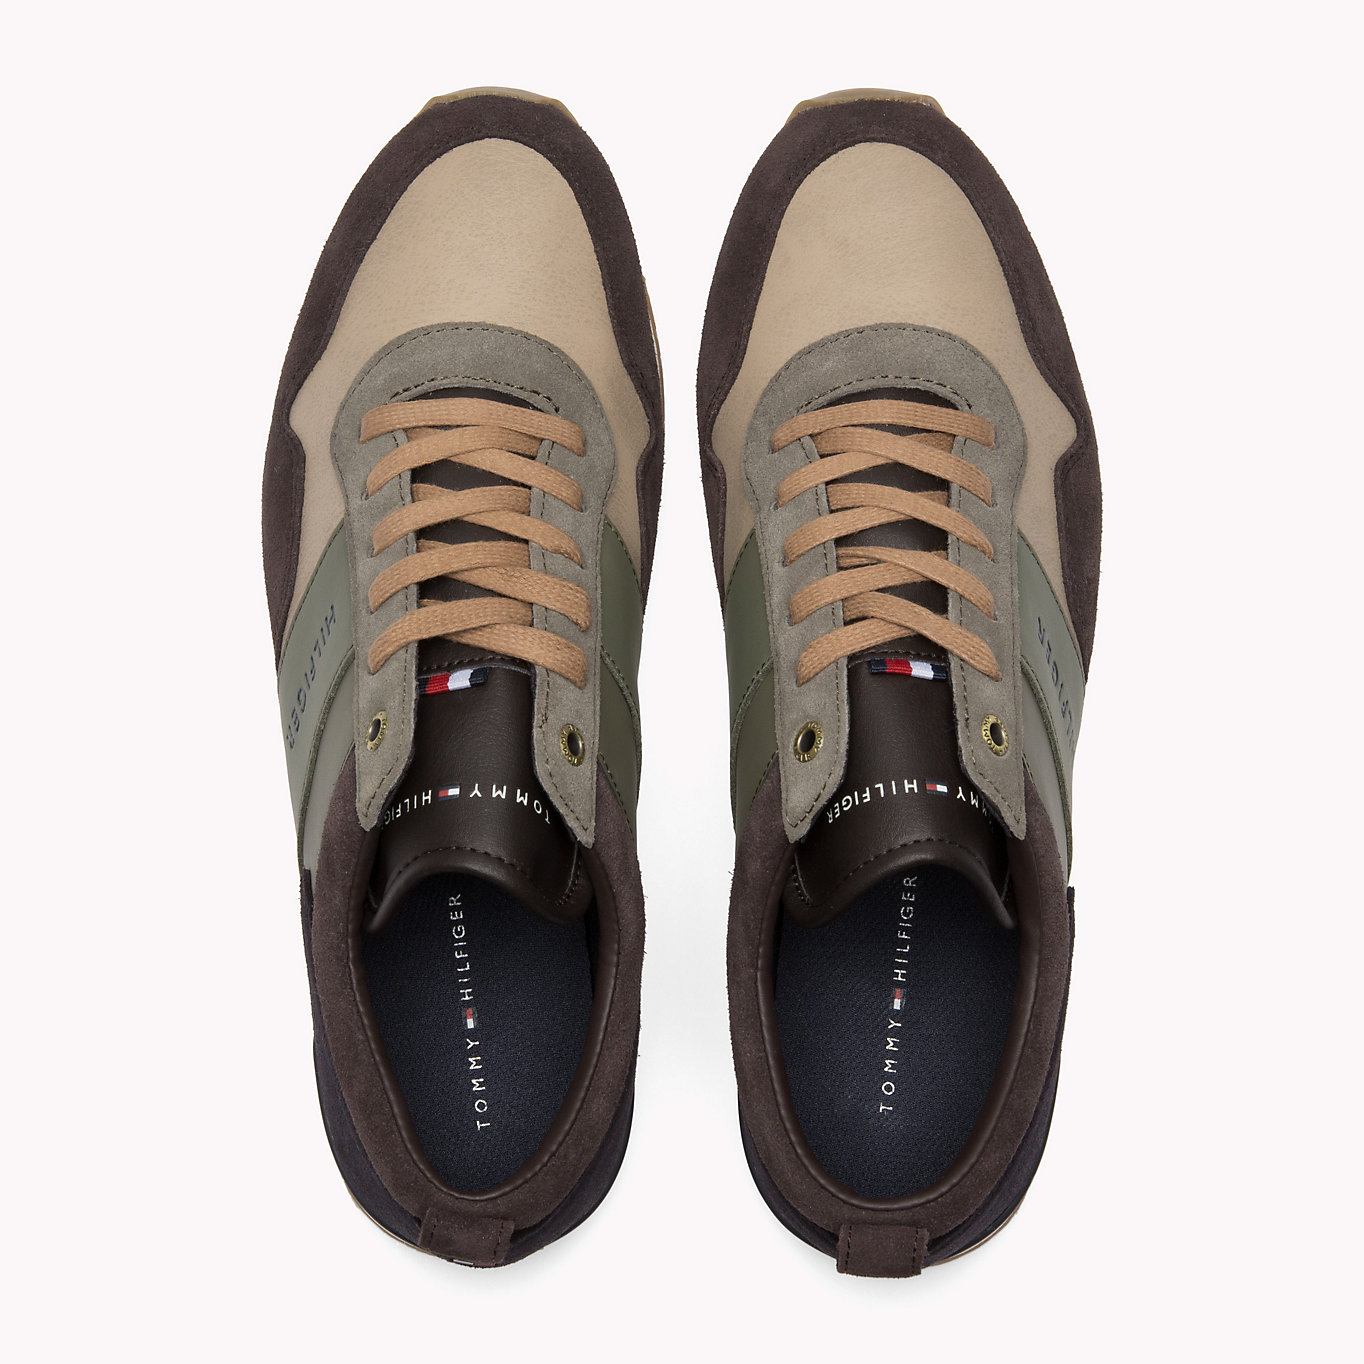 Tommy Hilfiger színes bőr férfi cipők Iconic Colour Mix Runner Coffeebean / Dusty Olive